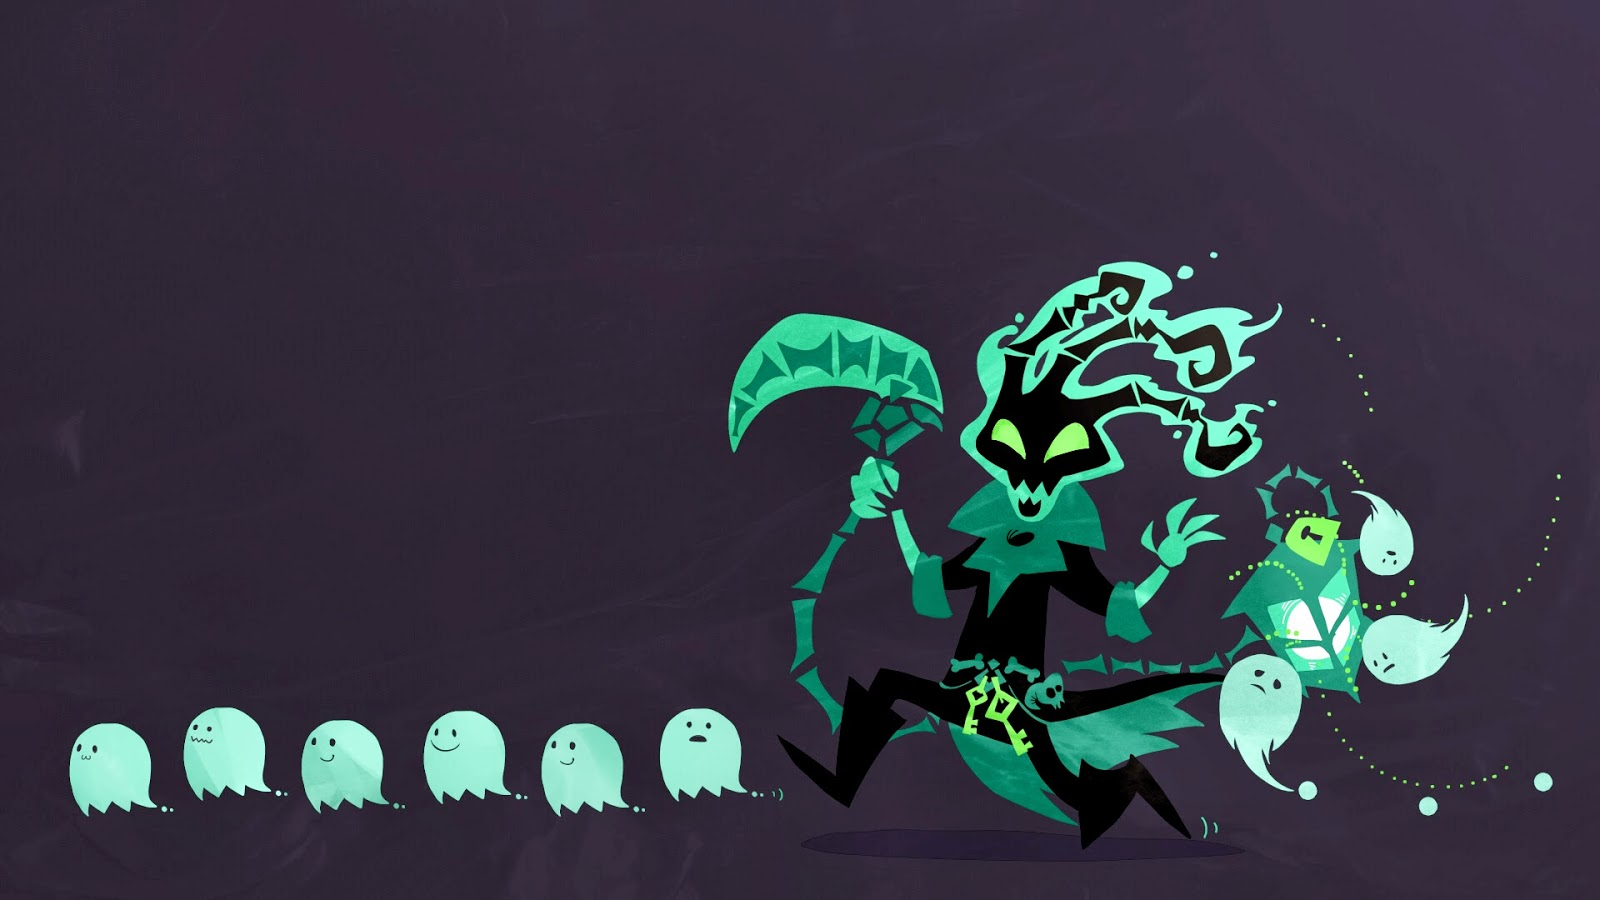 Thresh league of legends wallpaper thresh desktop wallpaper thresh league of legends wallpaper voltagebd Image collections